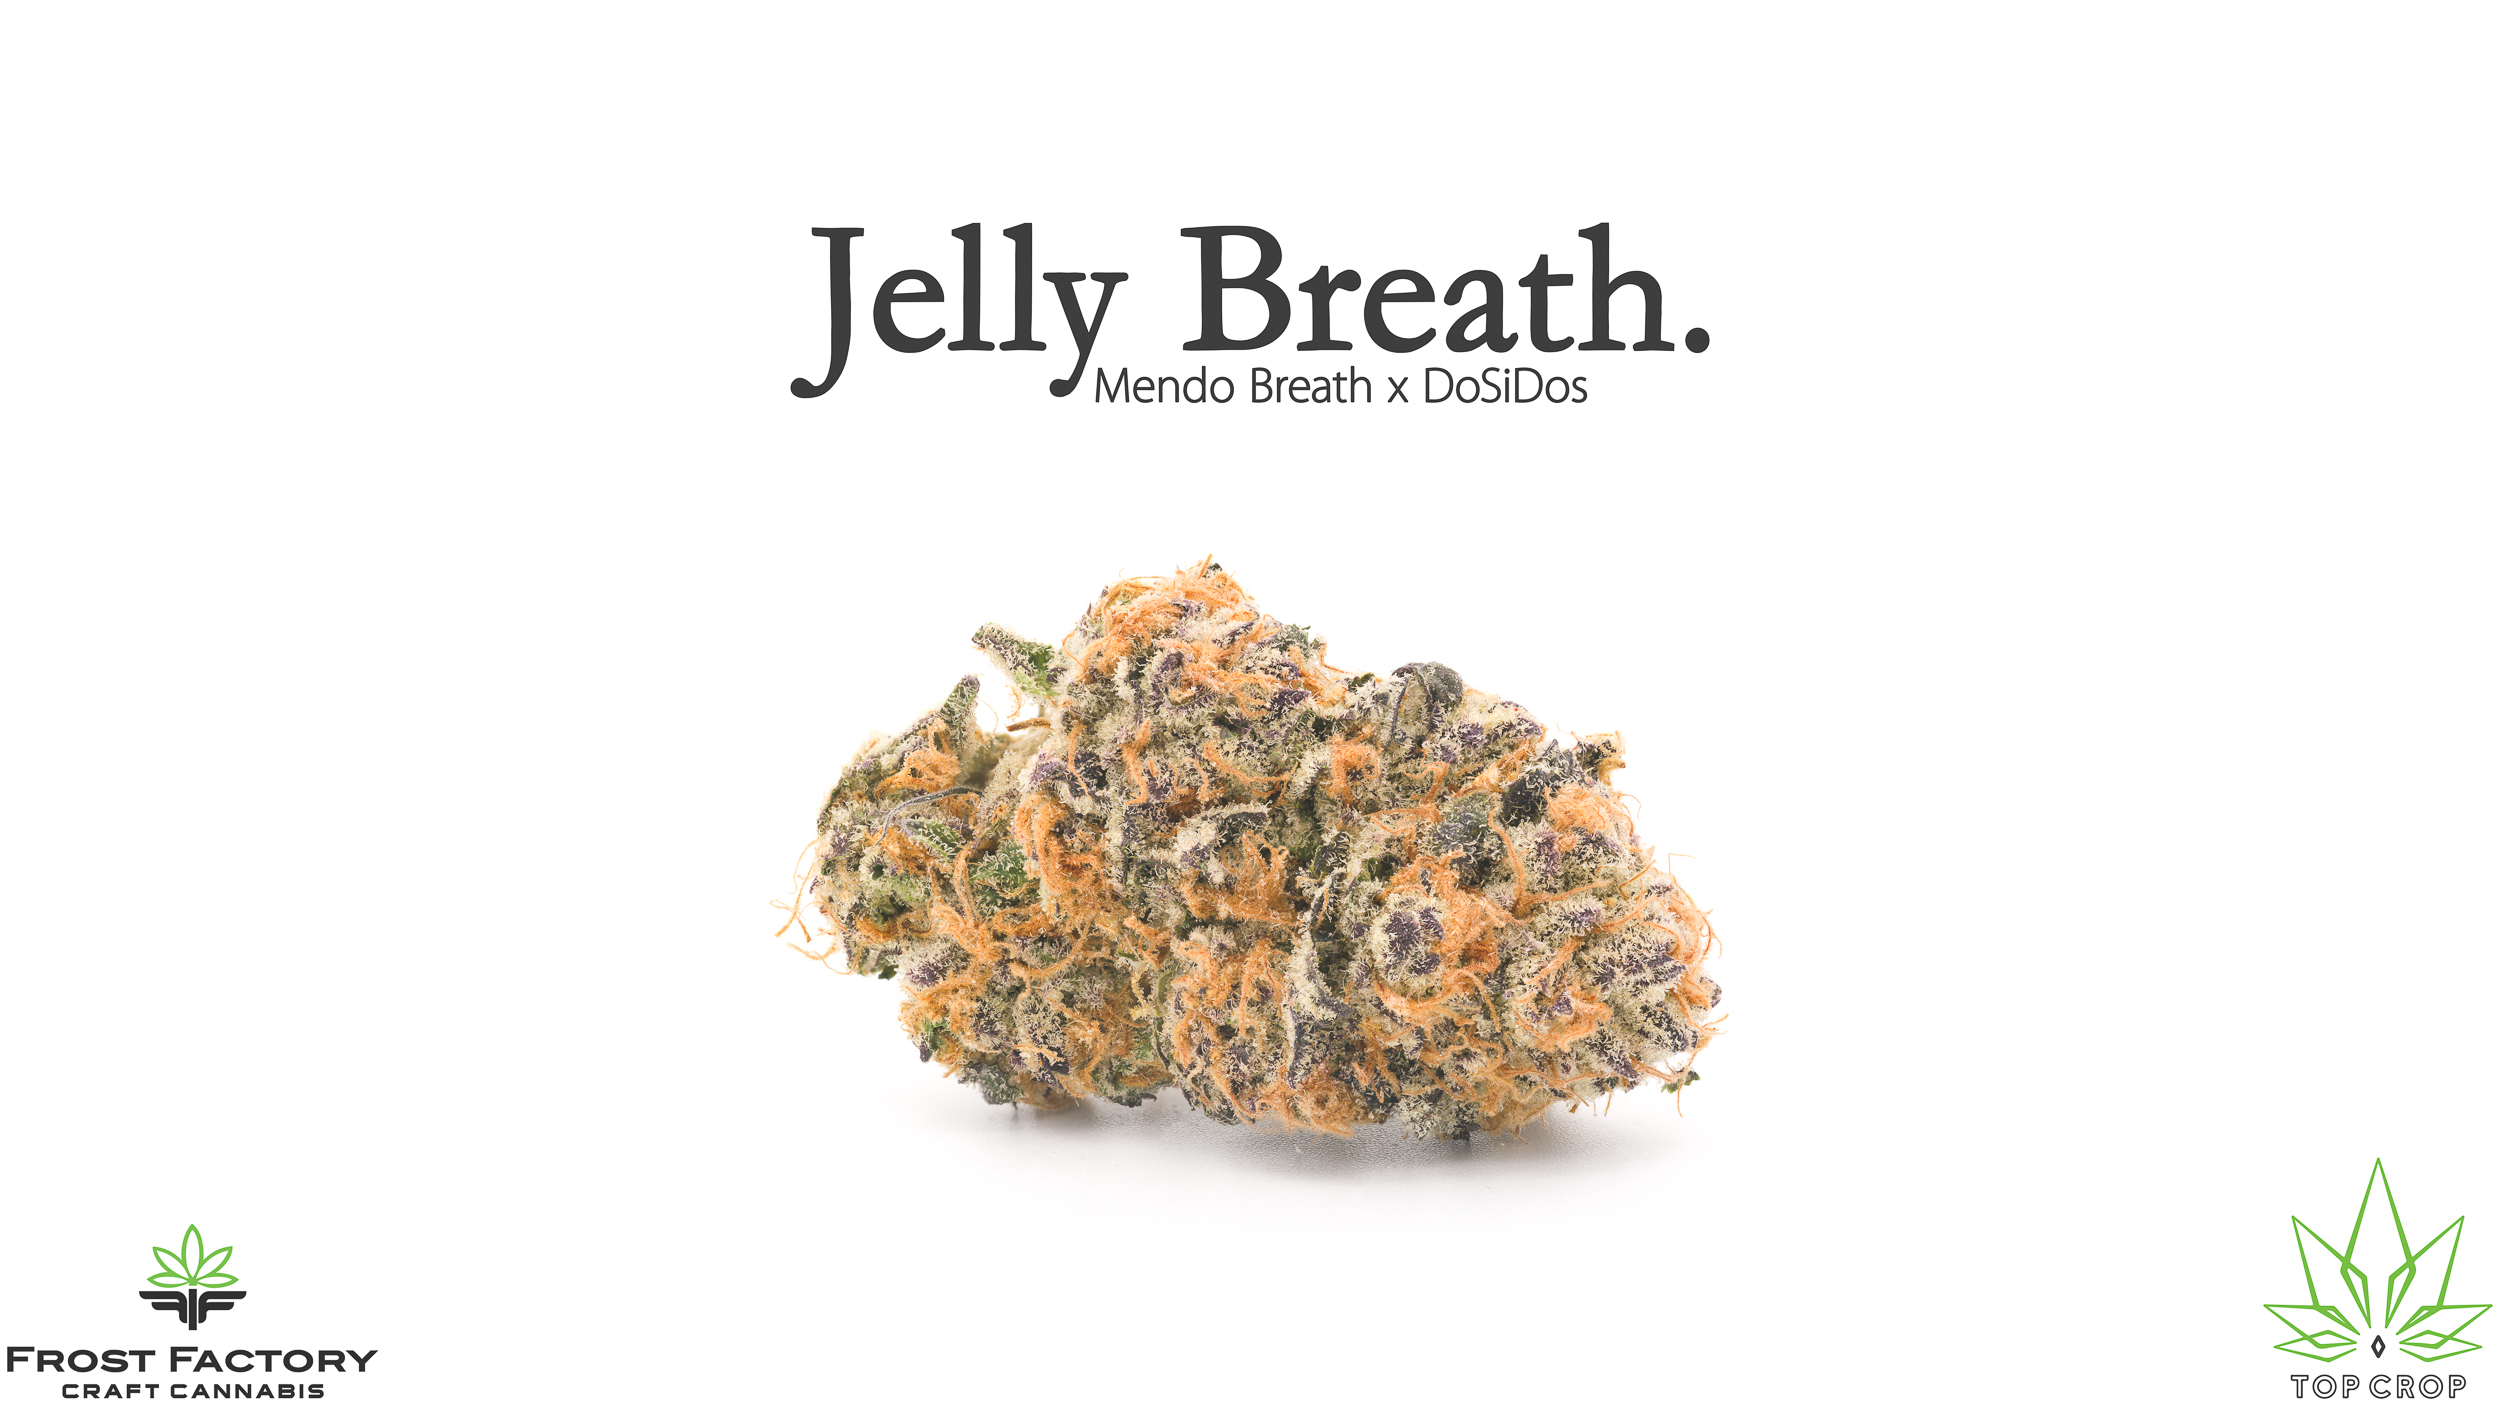 Jelly Breath 16.9.jpg